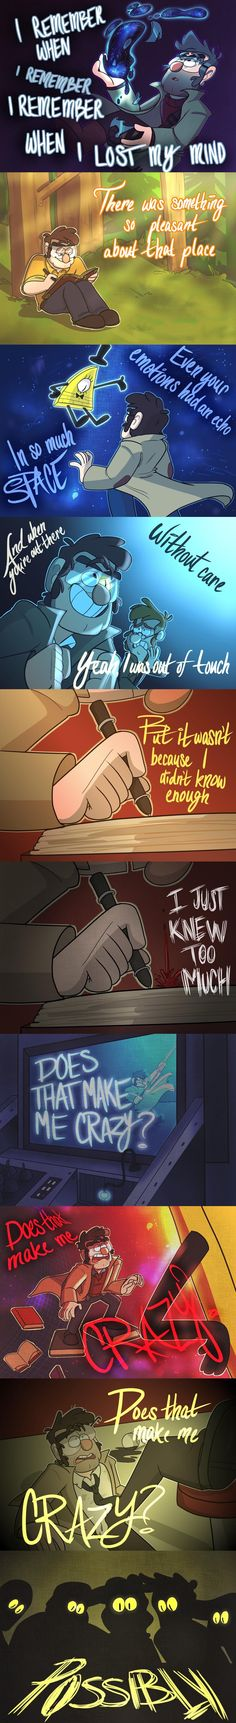 See more 'Gravity Falls' images on Know Your Meme!